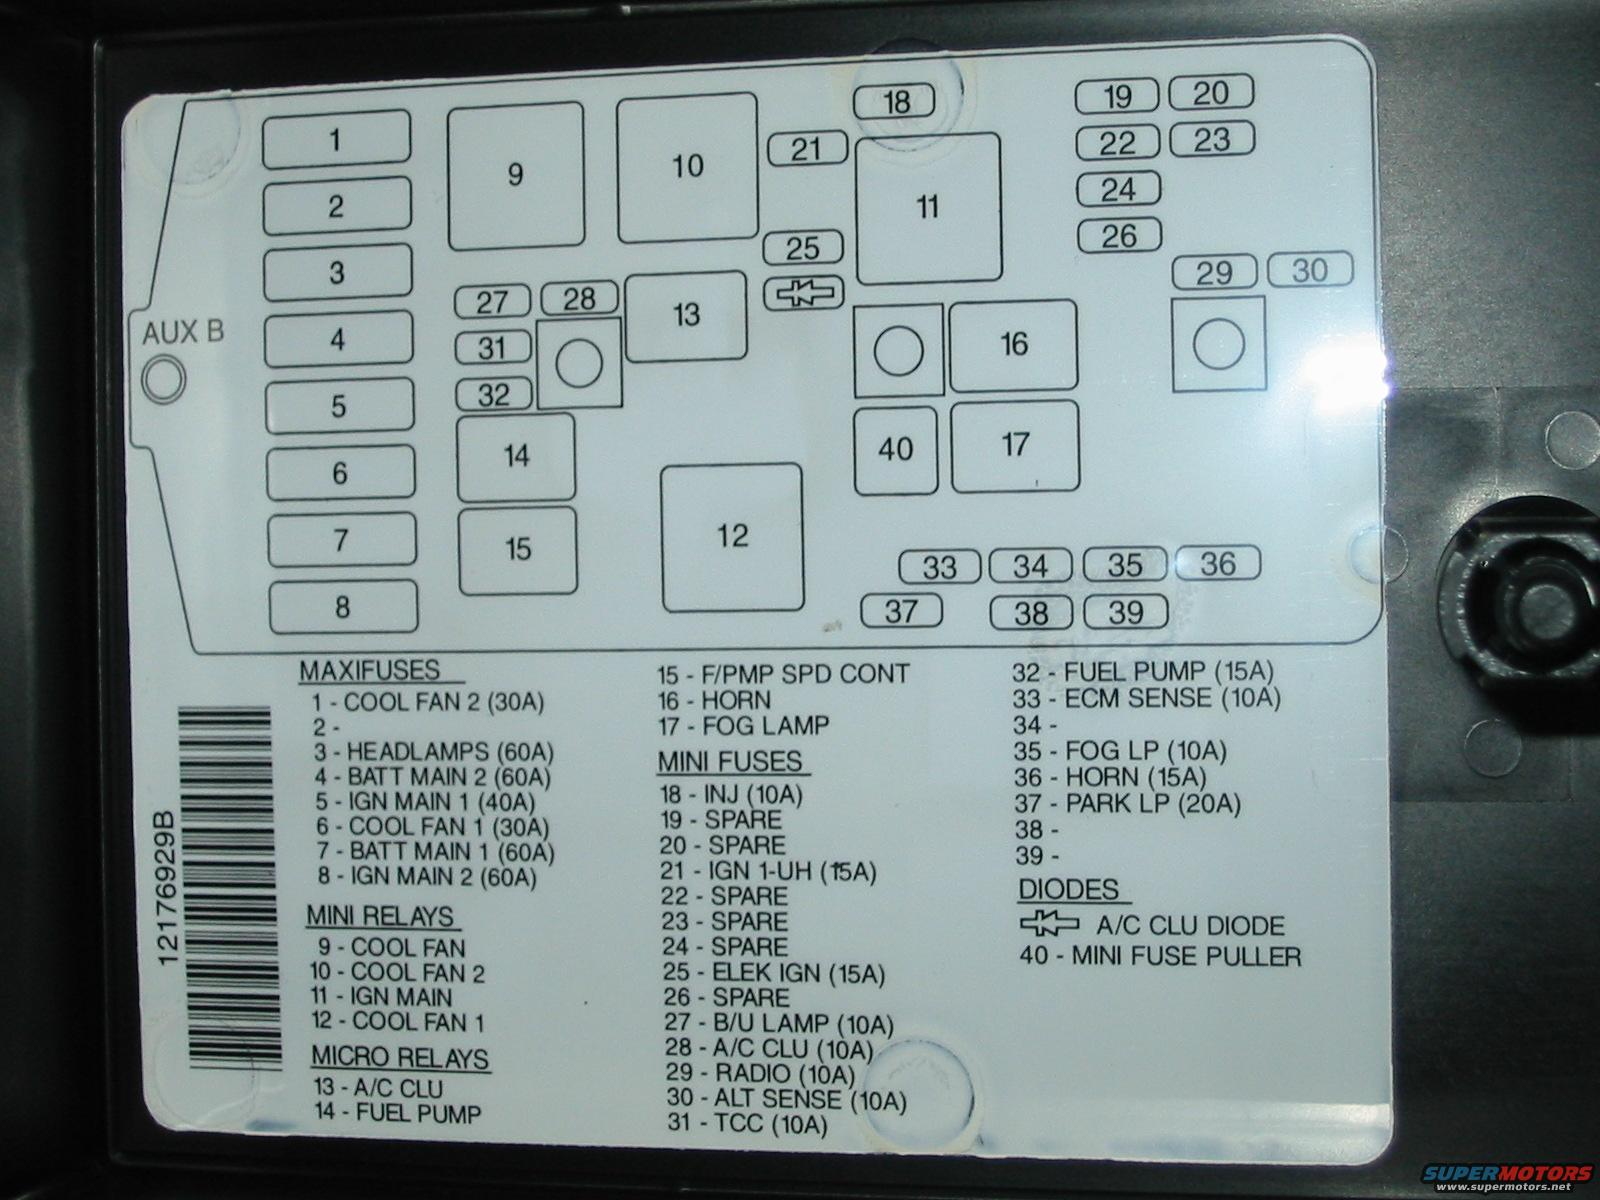 fuse relay panel diagram speedometer stops working in neutral page 2 1998 pontiac grand prix fuse box diagram at edmiracle.co